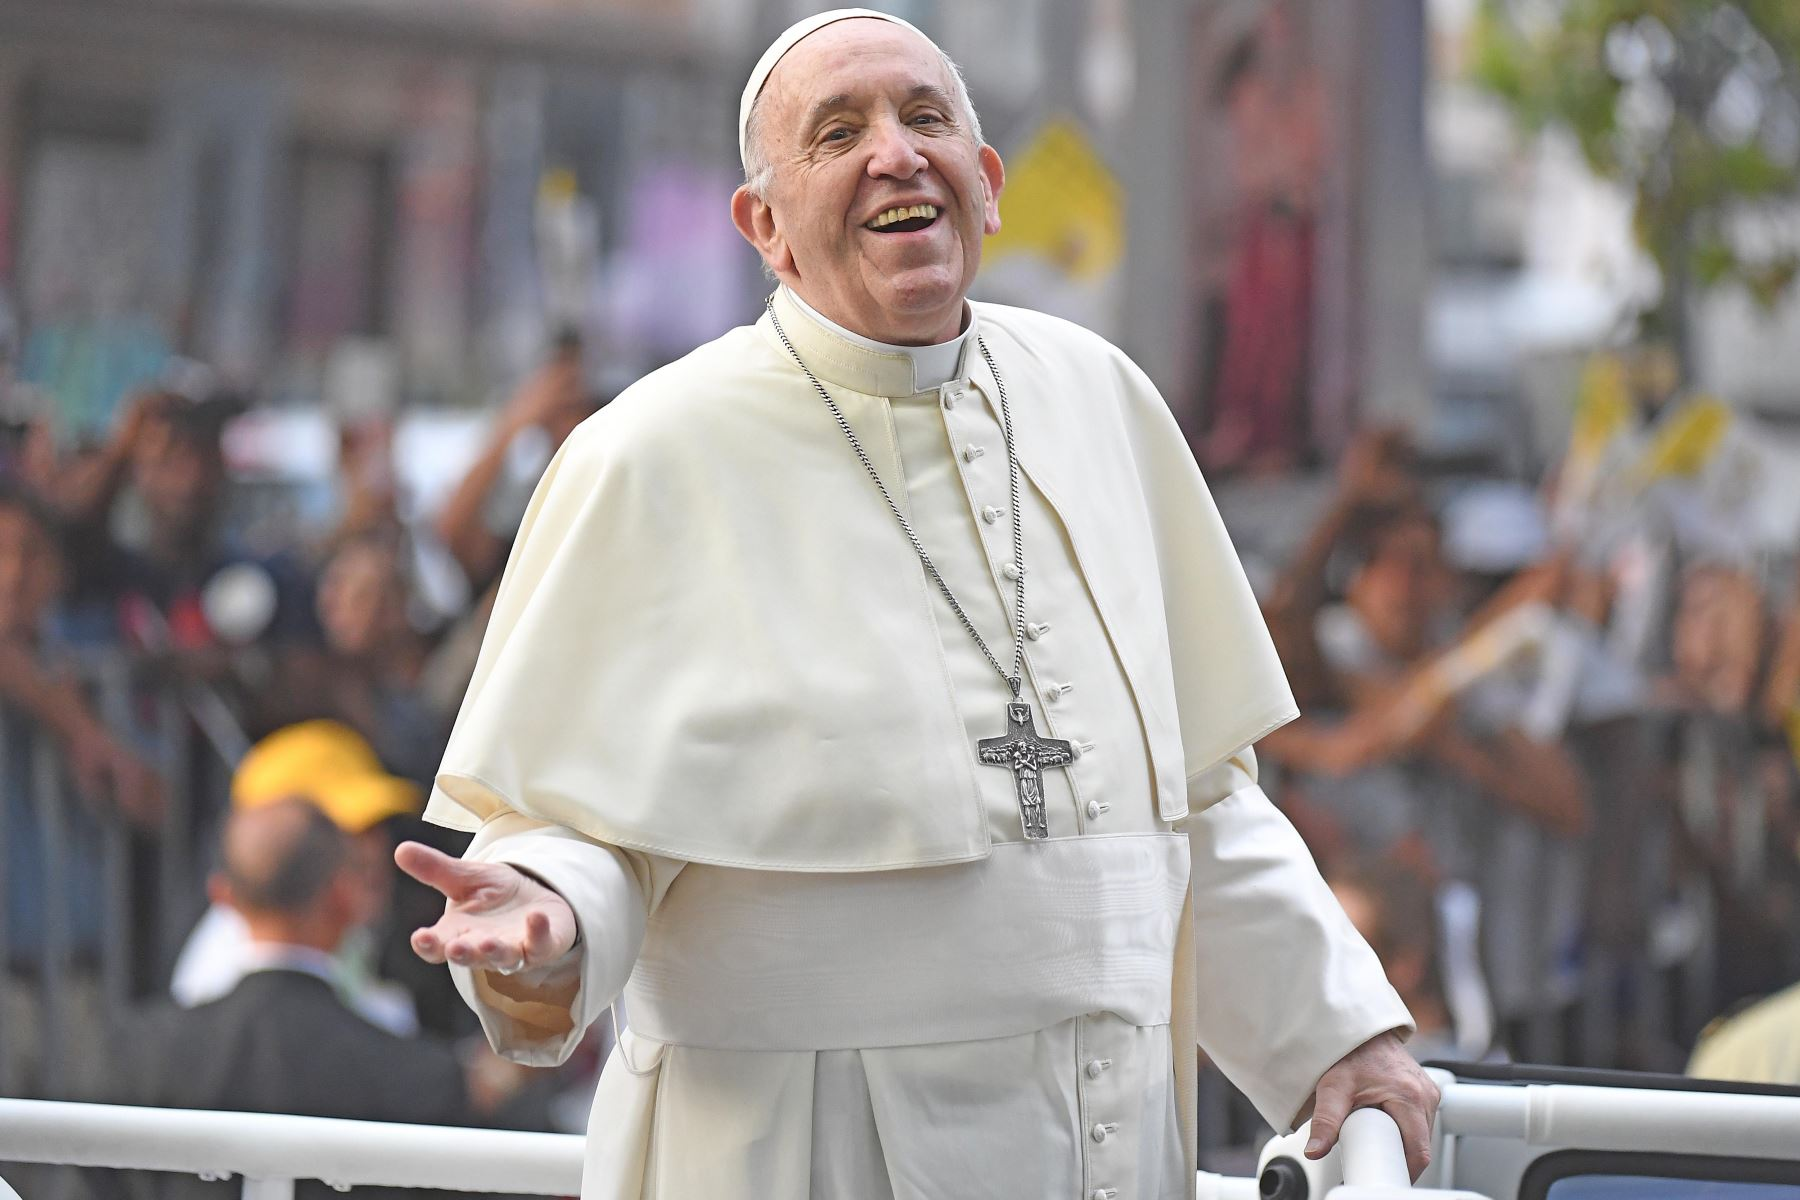 Pope draws crowd to Chile Mass, also protests